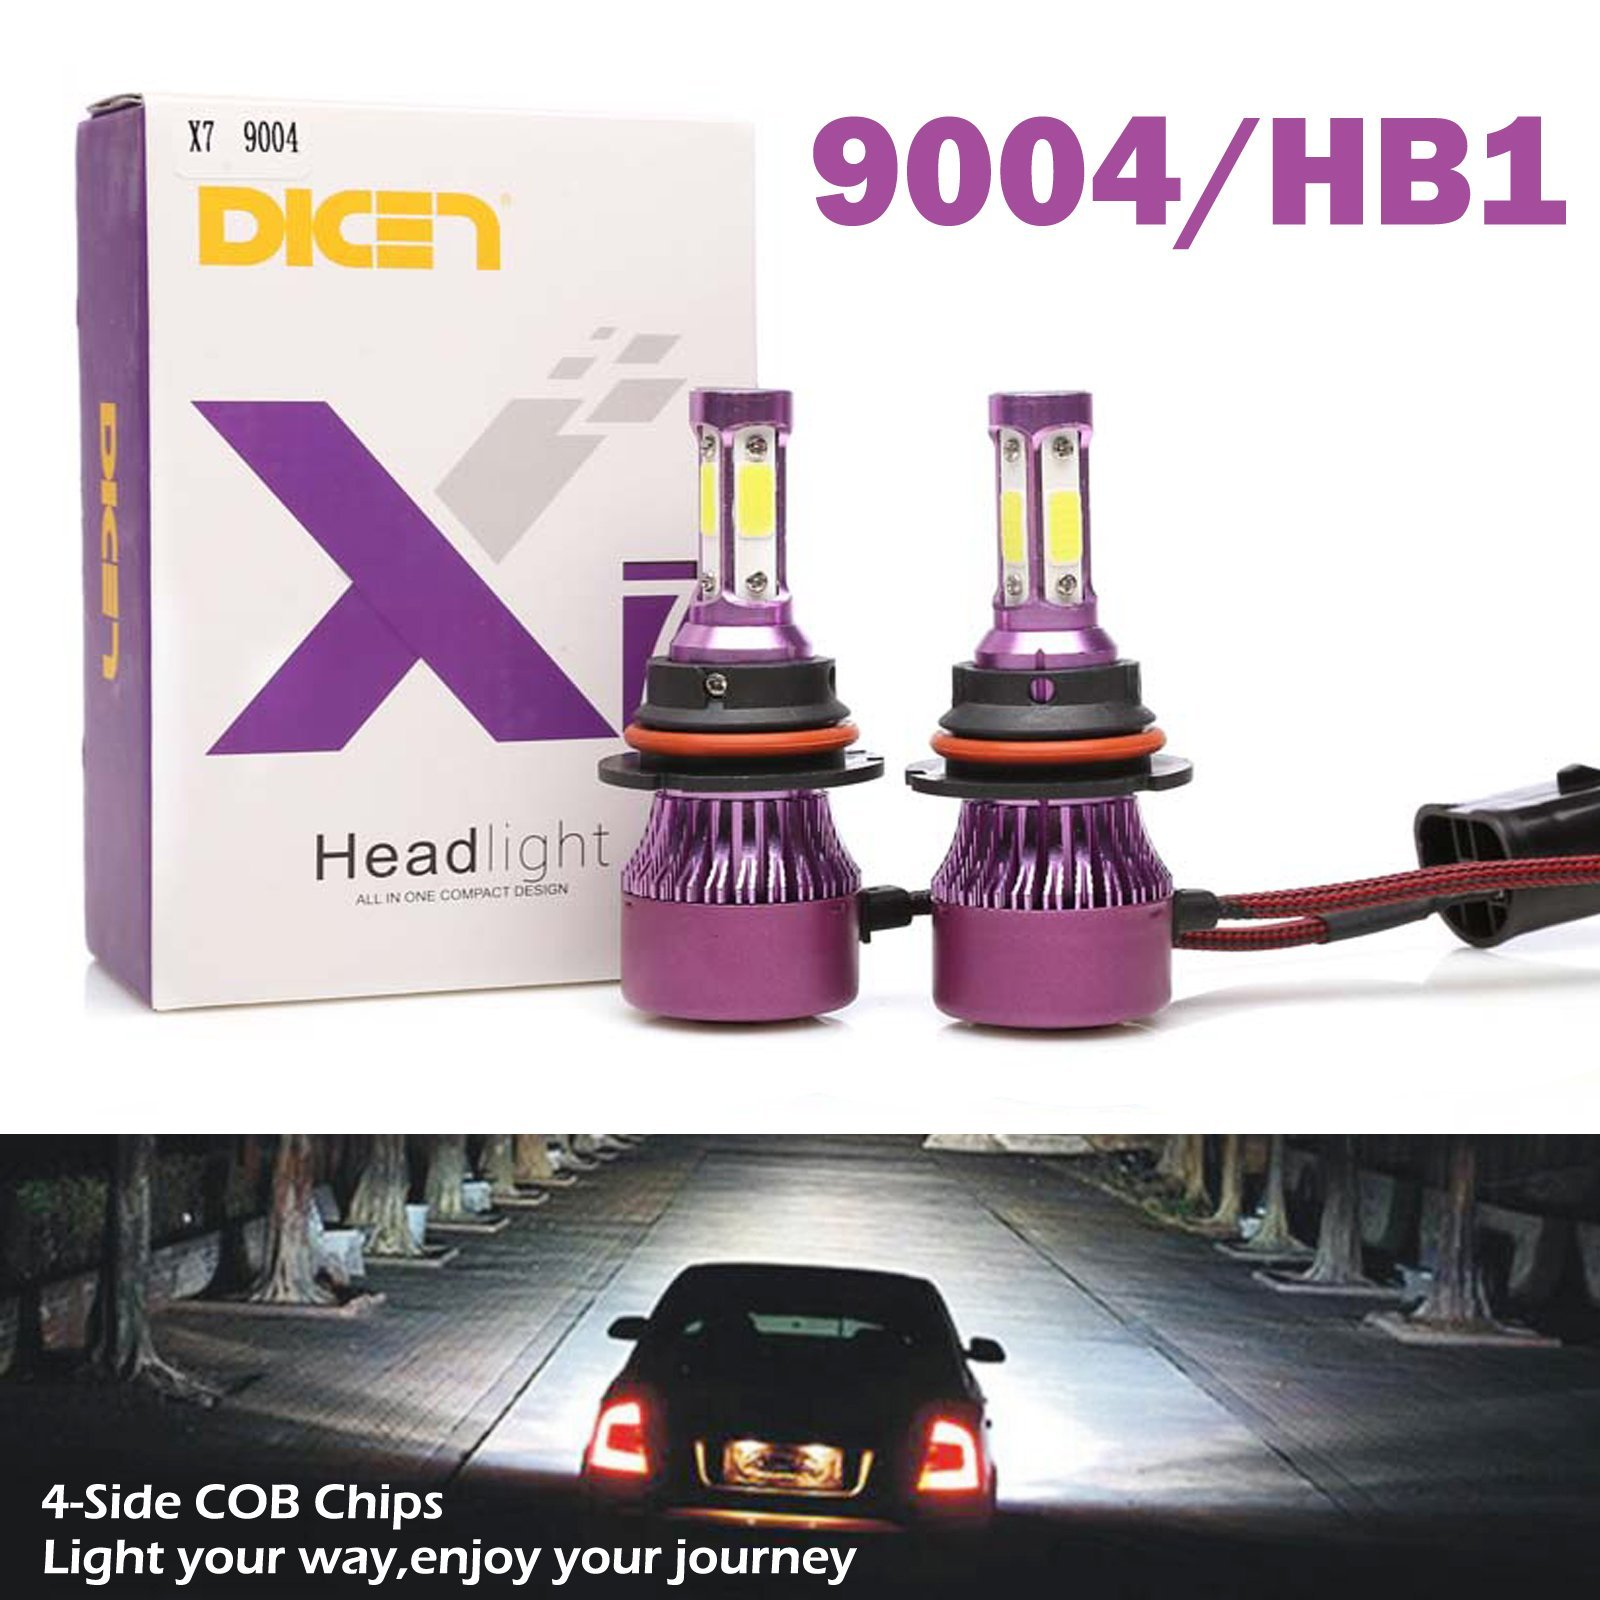 9004 HB1 LED Headlight Bulbs High Low Beam 6000K Bright White 60W 6000LM 4 Side COB Chips Car Headlamp Automotive Conversion Kit (Pack of 2, 2 Year Warranty) by DICN